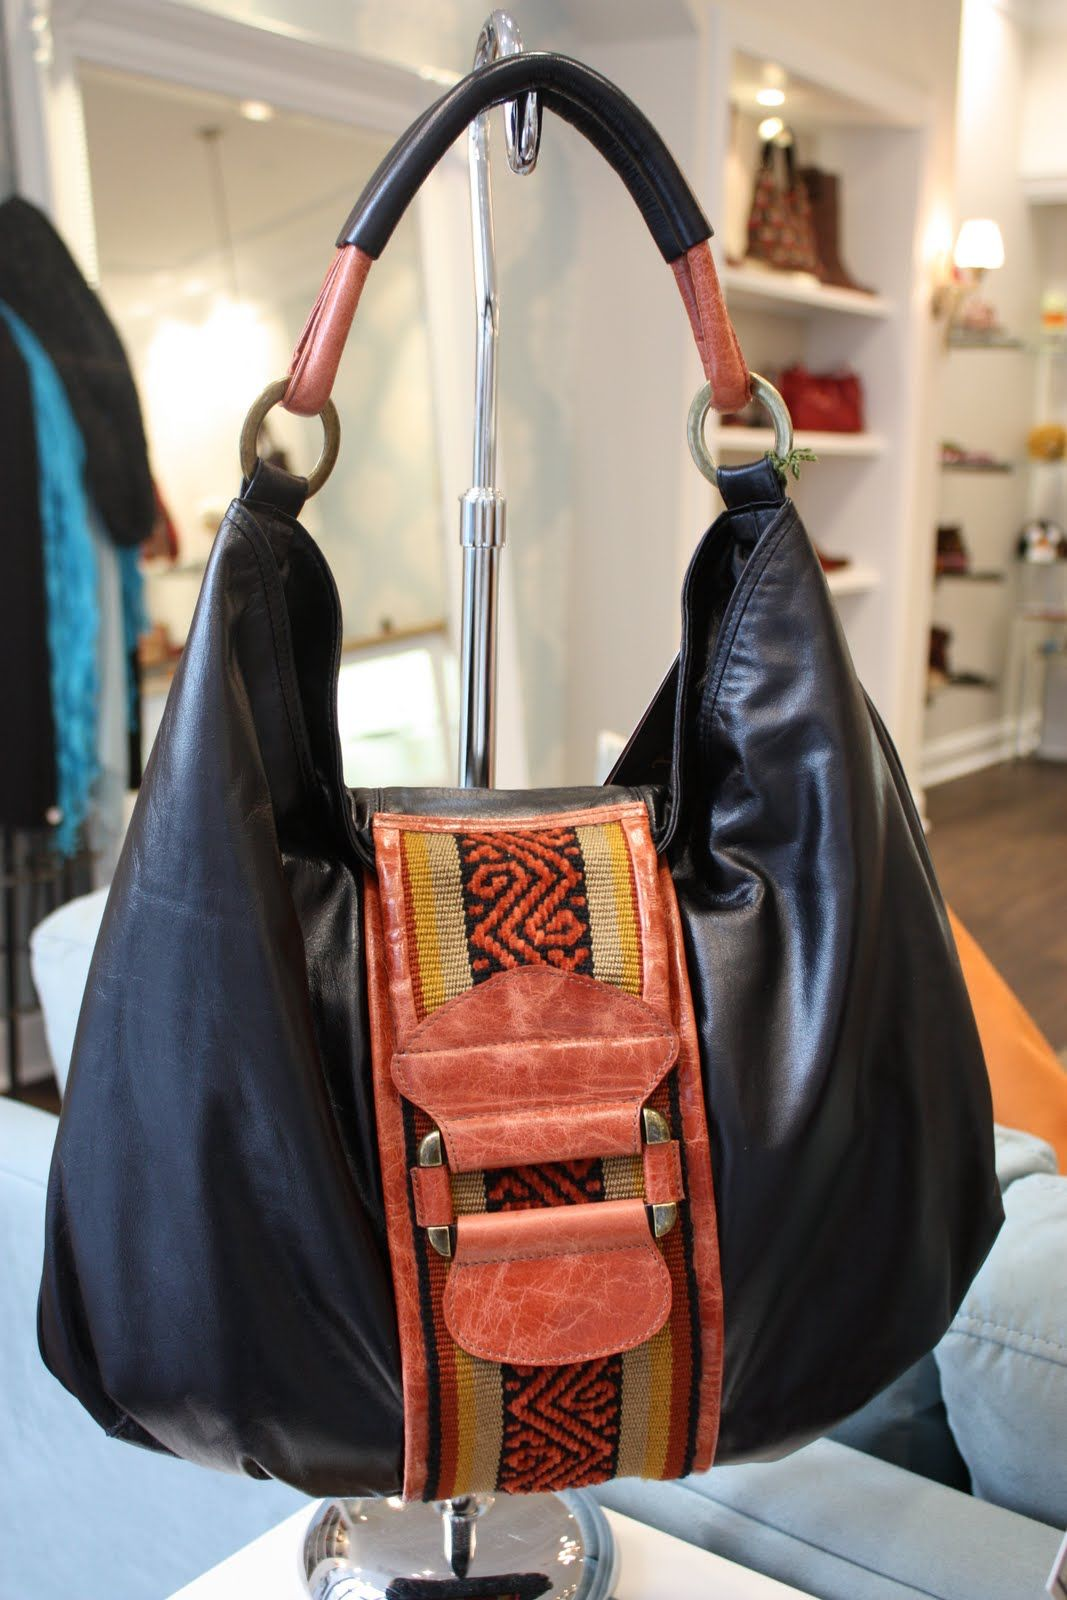 Another Leather Handbag From Limon Piel With Colombian Handwoven Trim